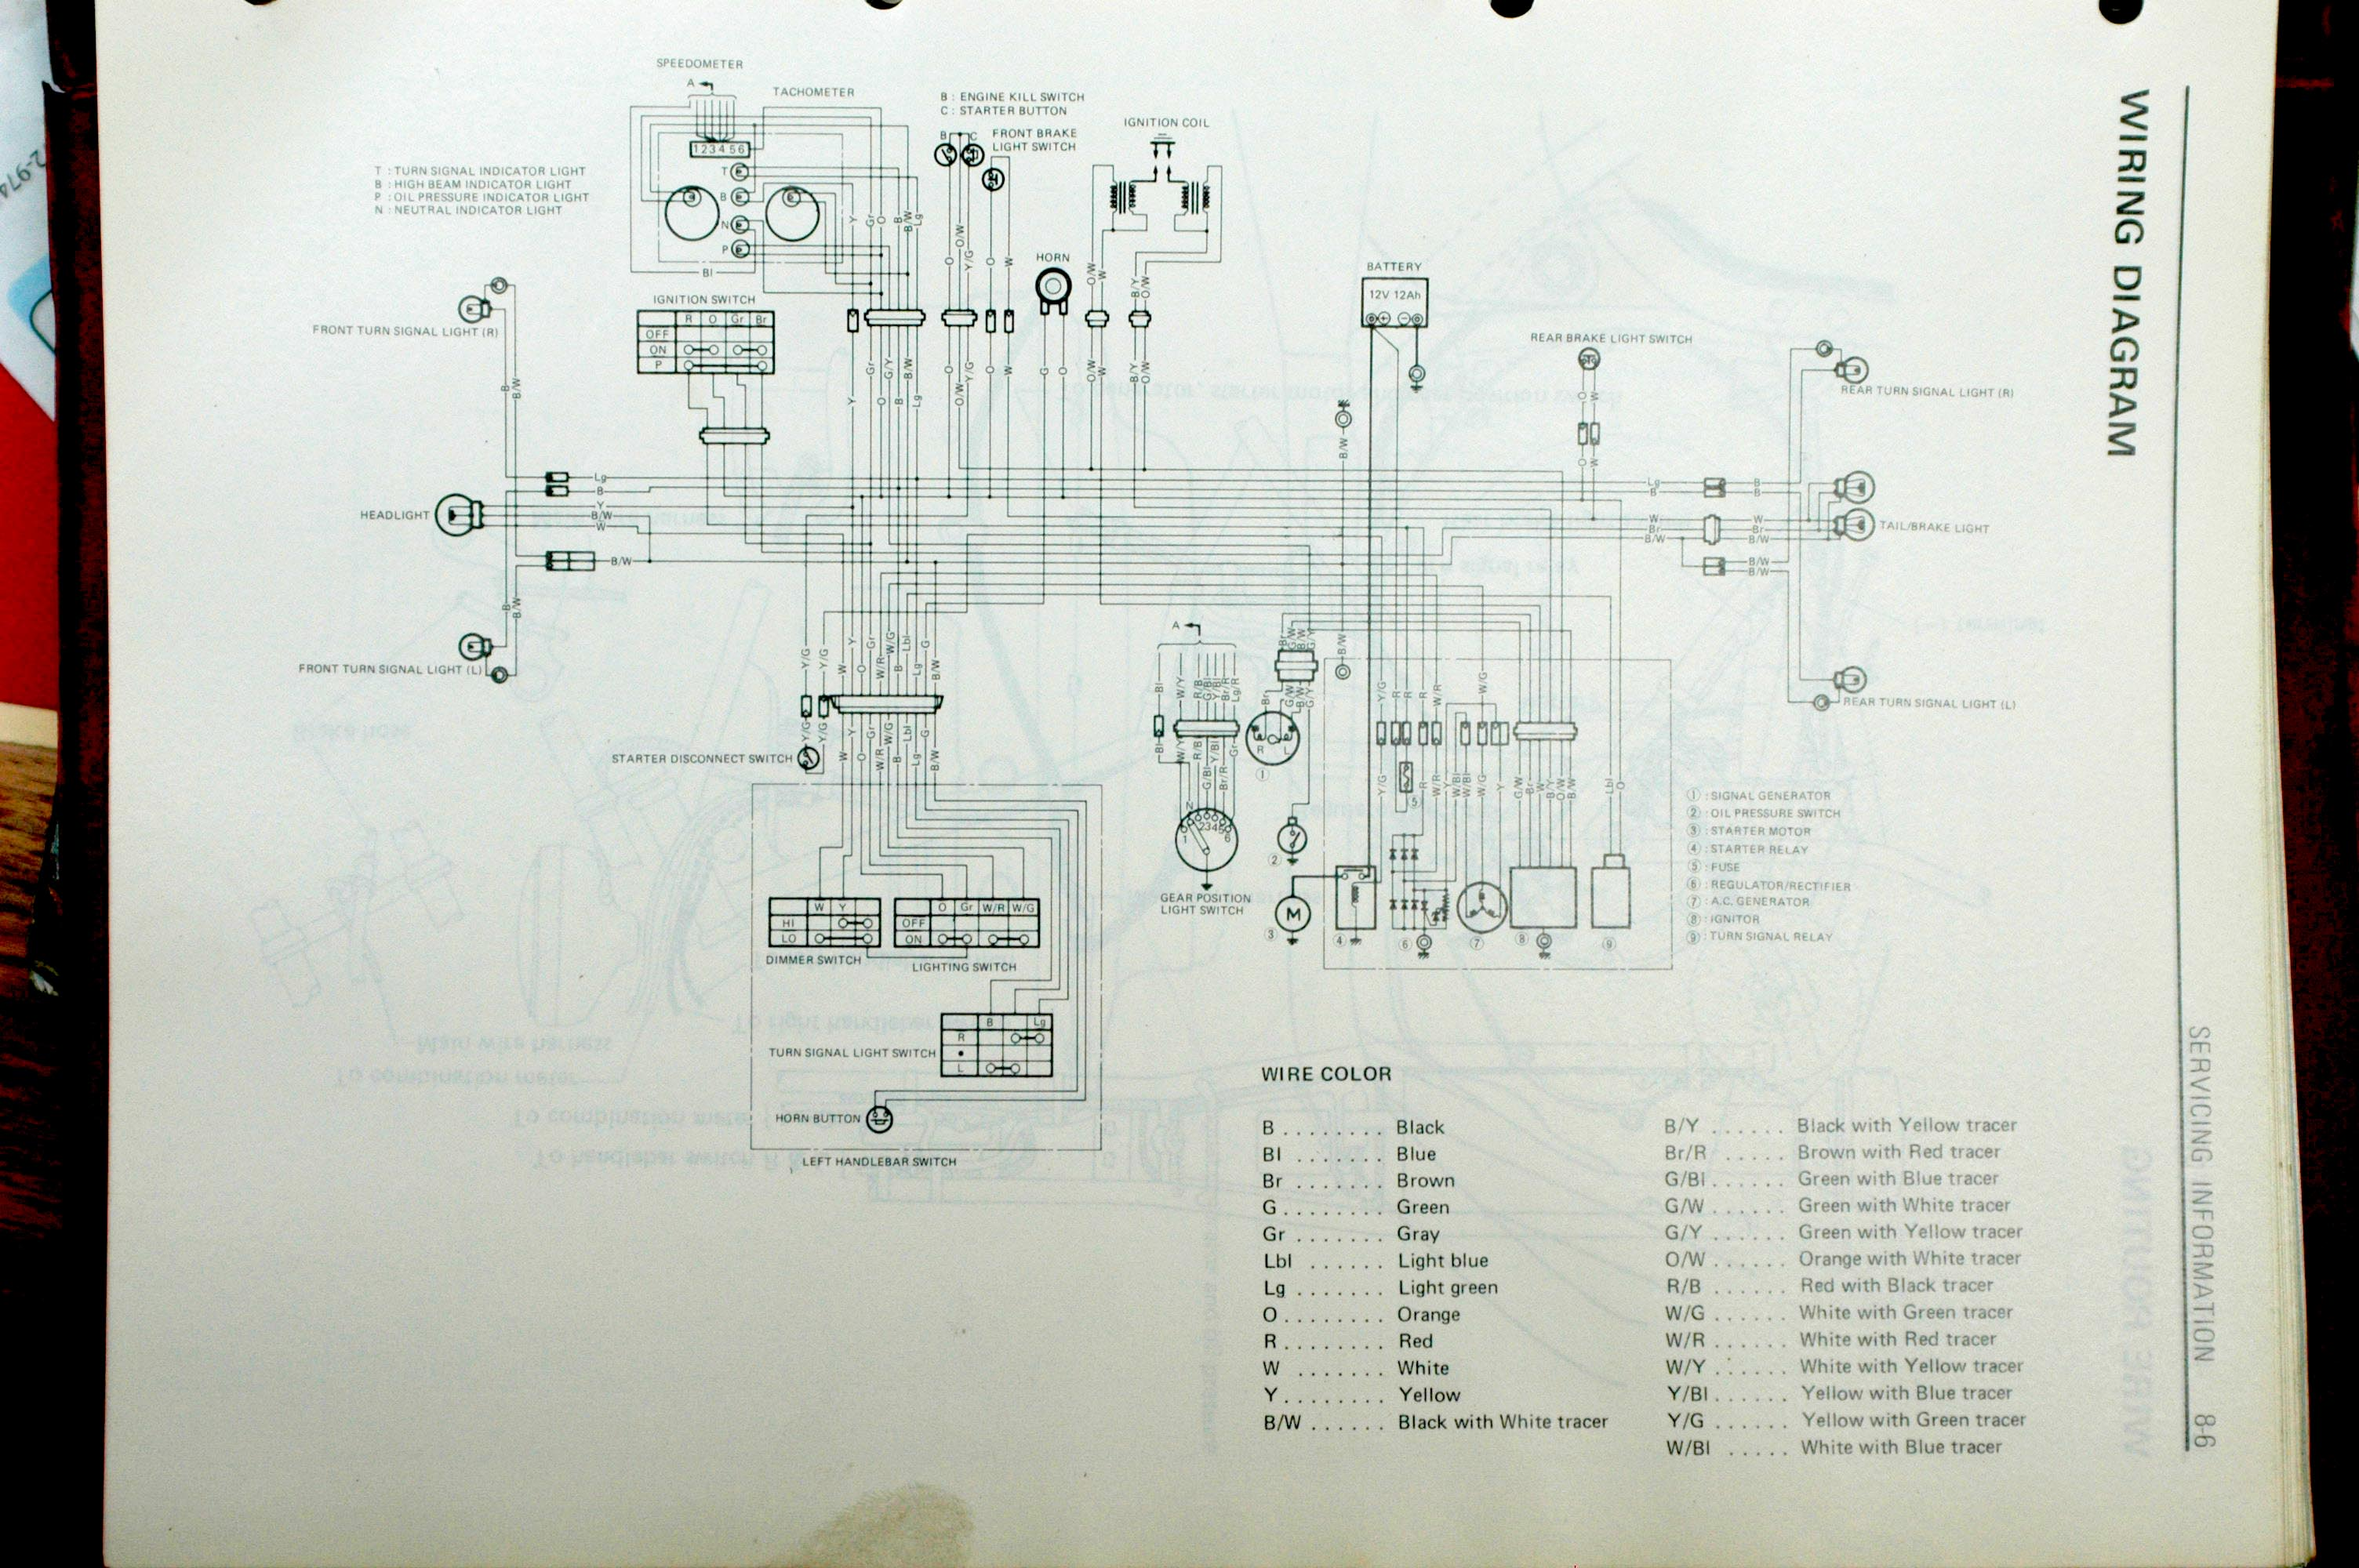 2003 sv650 wiring diagram mgf burman 650 owners manual ratmetr